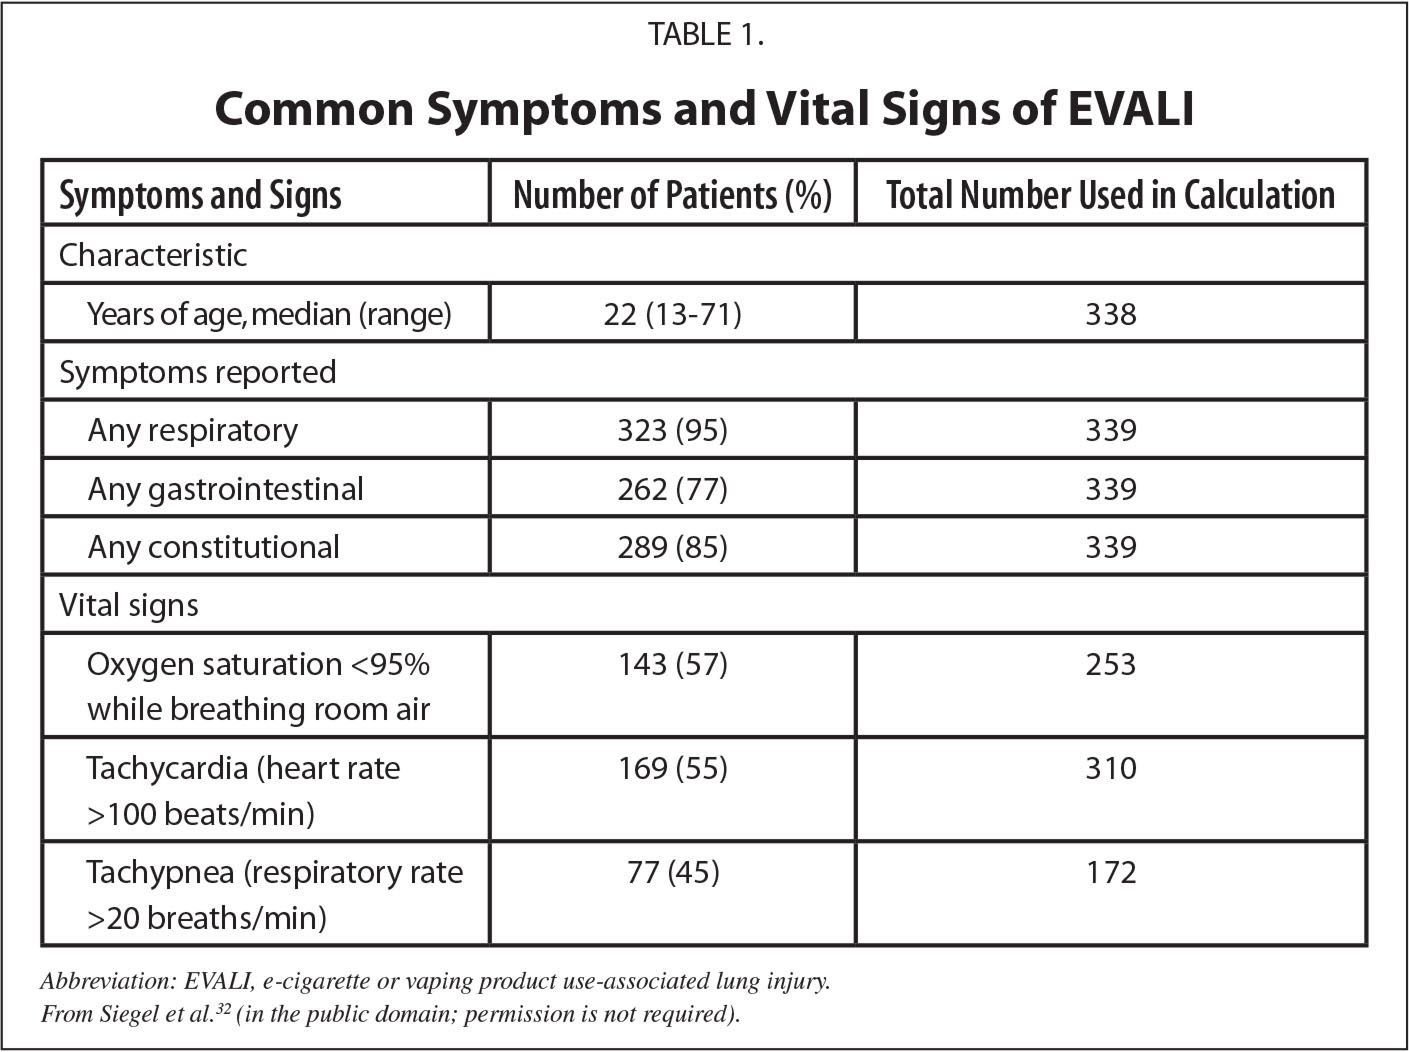 Common Symptoms and Vital Signs of EVALI